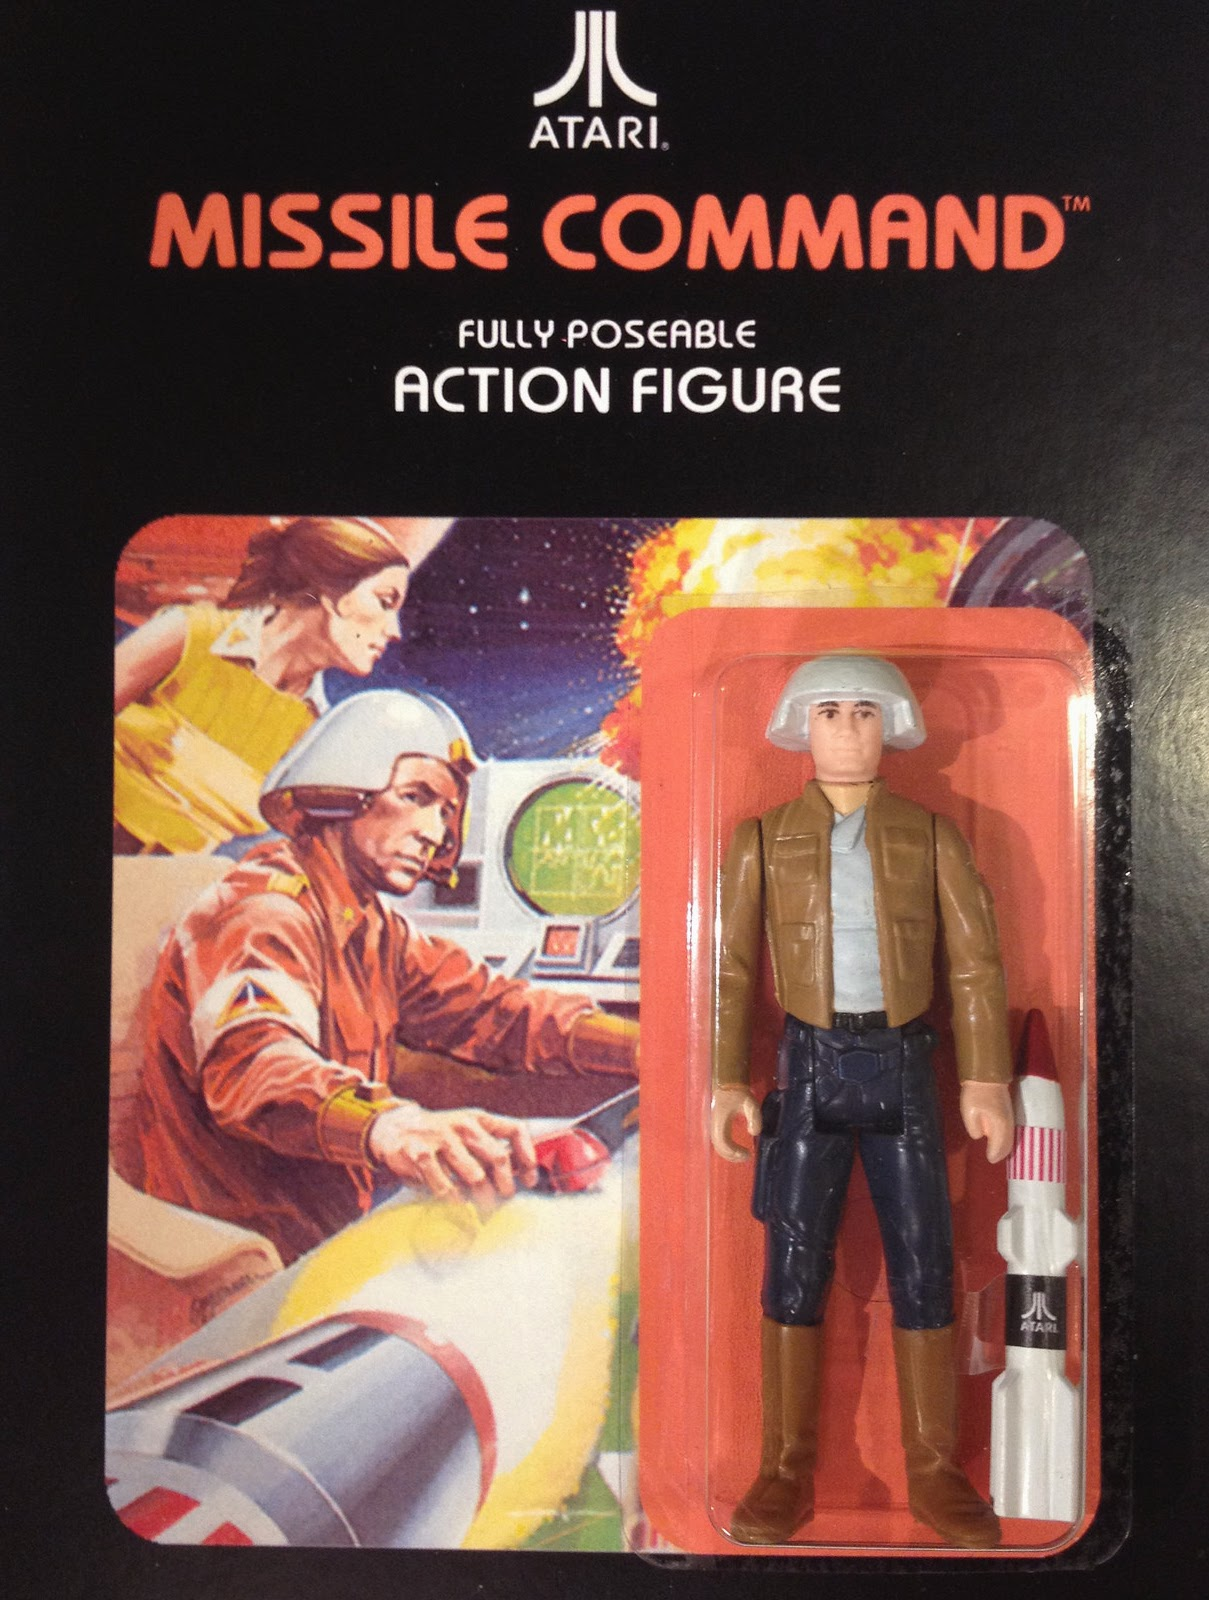 80s Toys Action Figures : Custom action figures based on classic atari video games